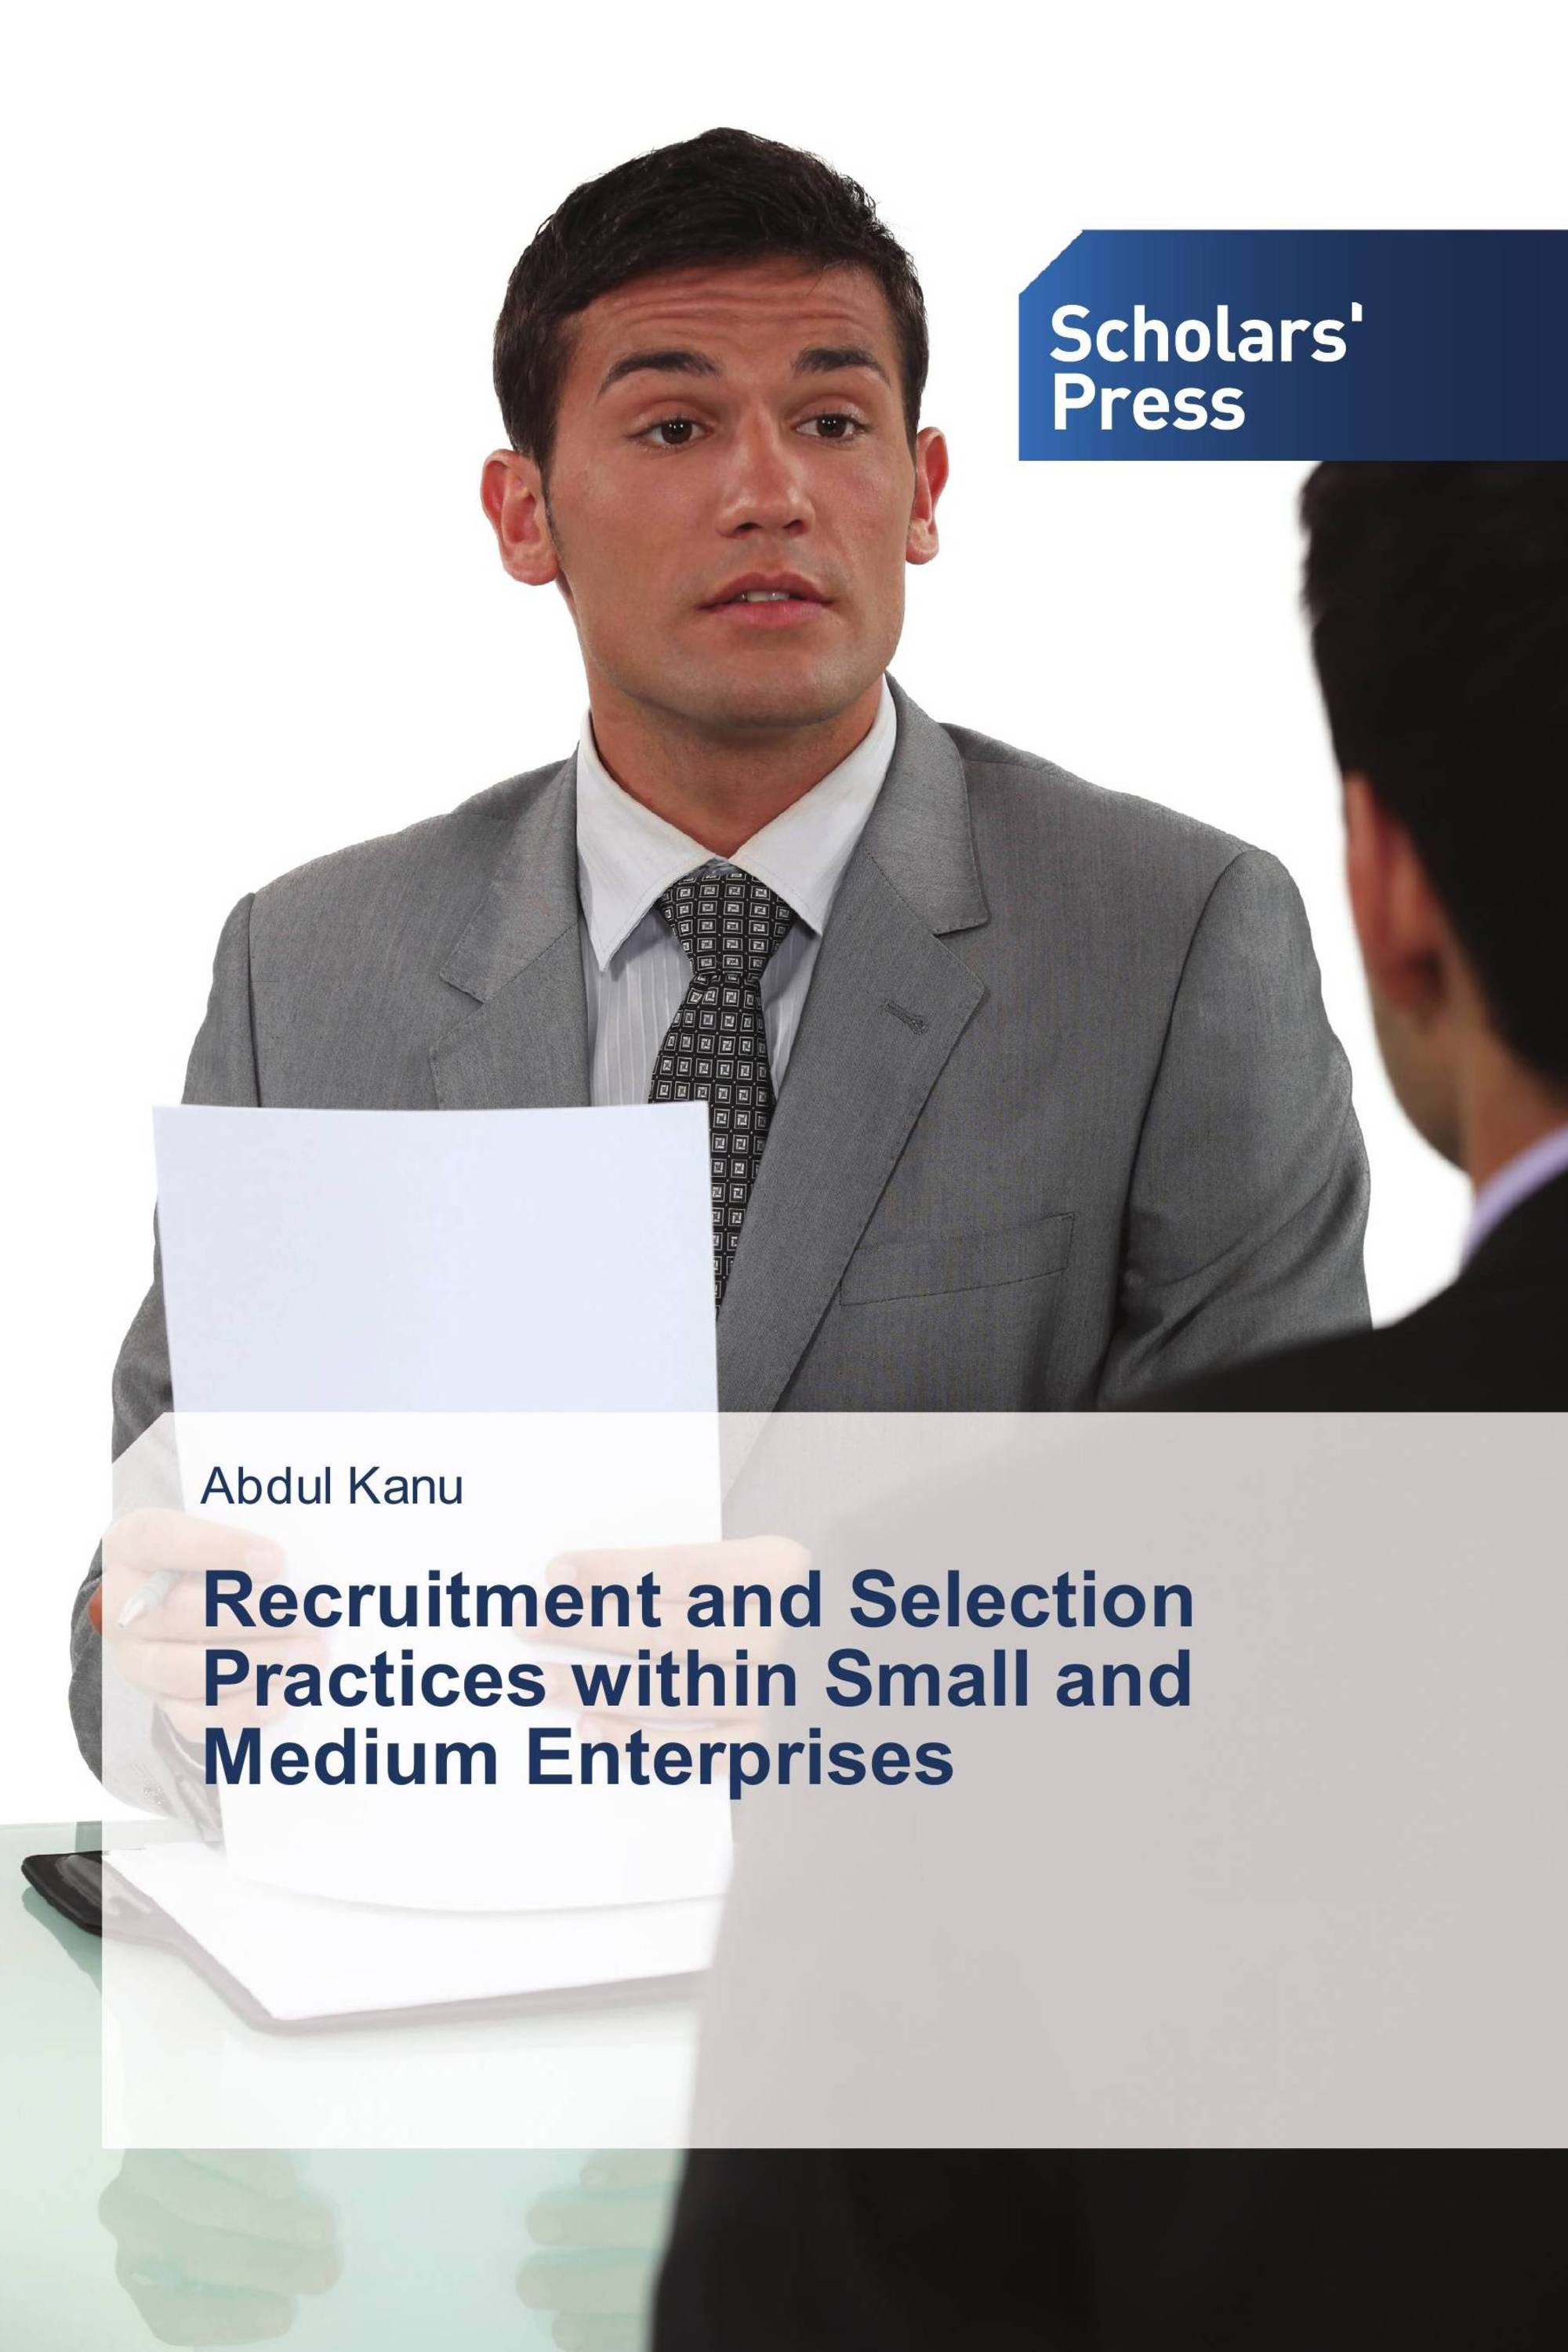 challenges in recruitment and selection practices It is imperative that recruitment and selection activities are productive, well- planned and unbiased – productive in terms of producing applicants of apt value and measure and the ability to distinguish between the ones that are suitable and those that are not, well-planned with regards to being timely and unbiased by dealing with applicants.